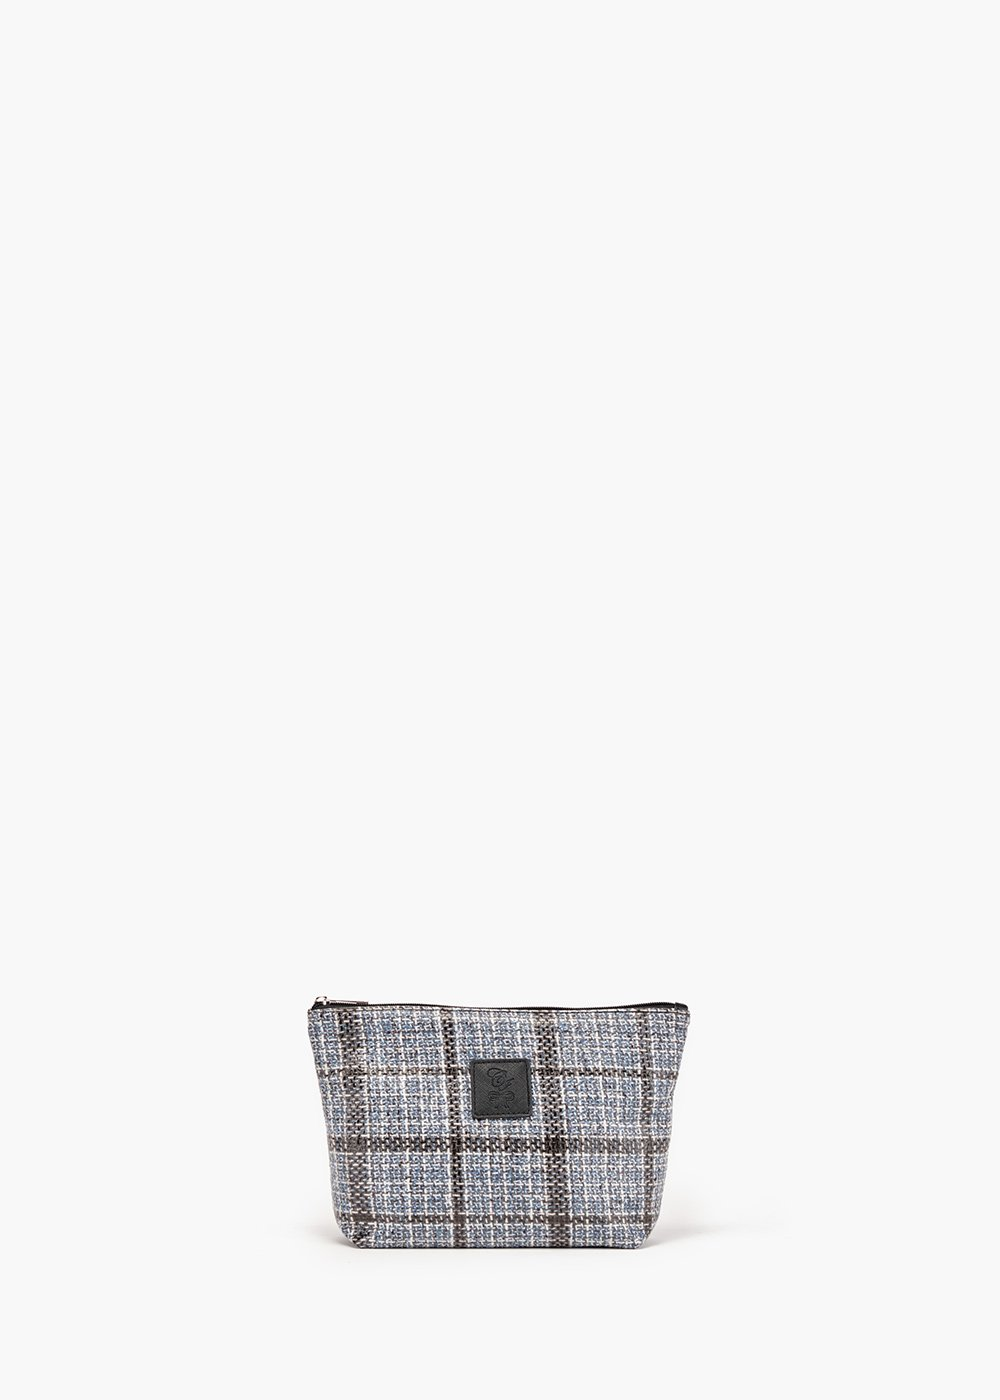 Beauty Bali Tartan in tessuto tartan plastificato - Avion / Black Fantasia - Donna